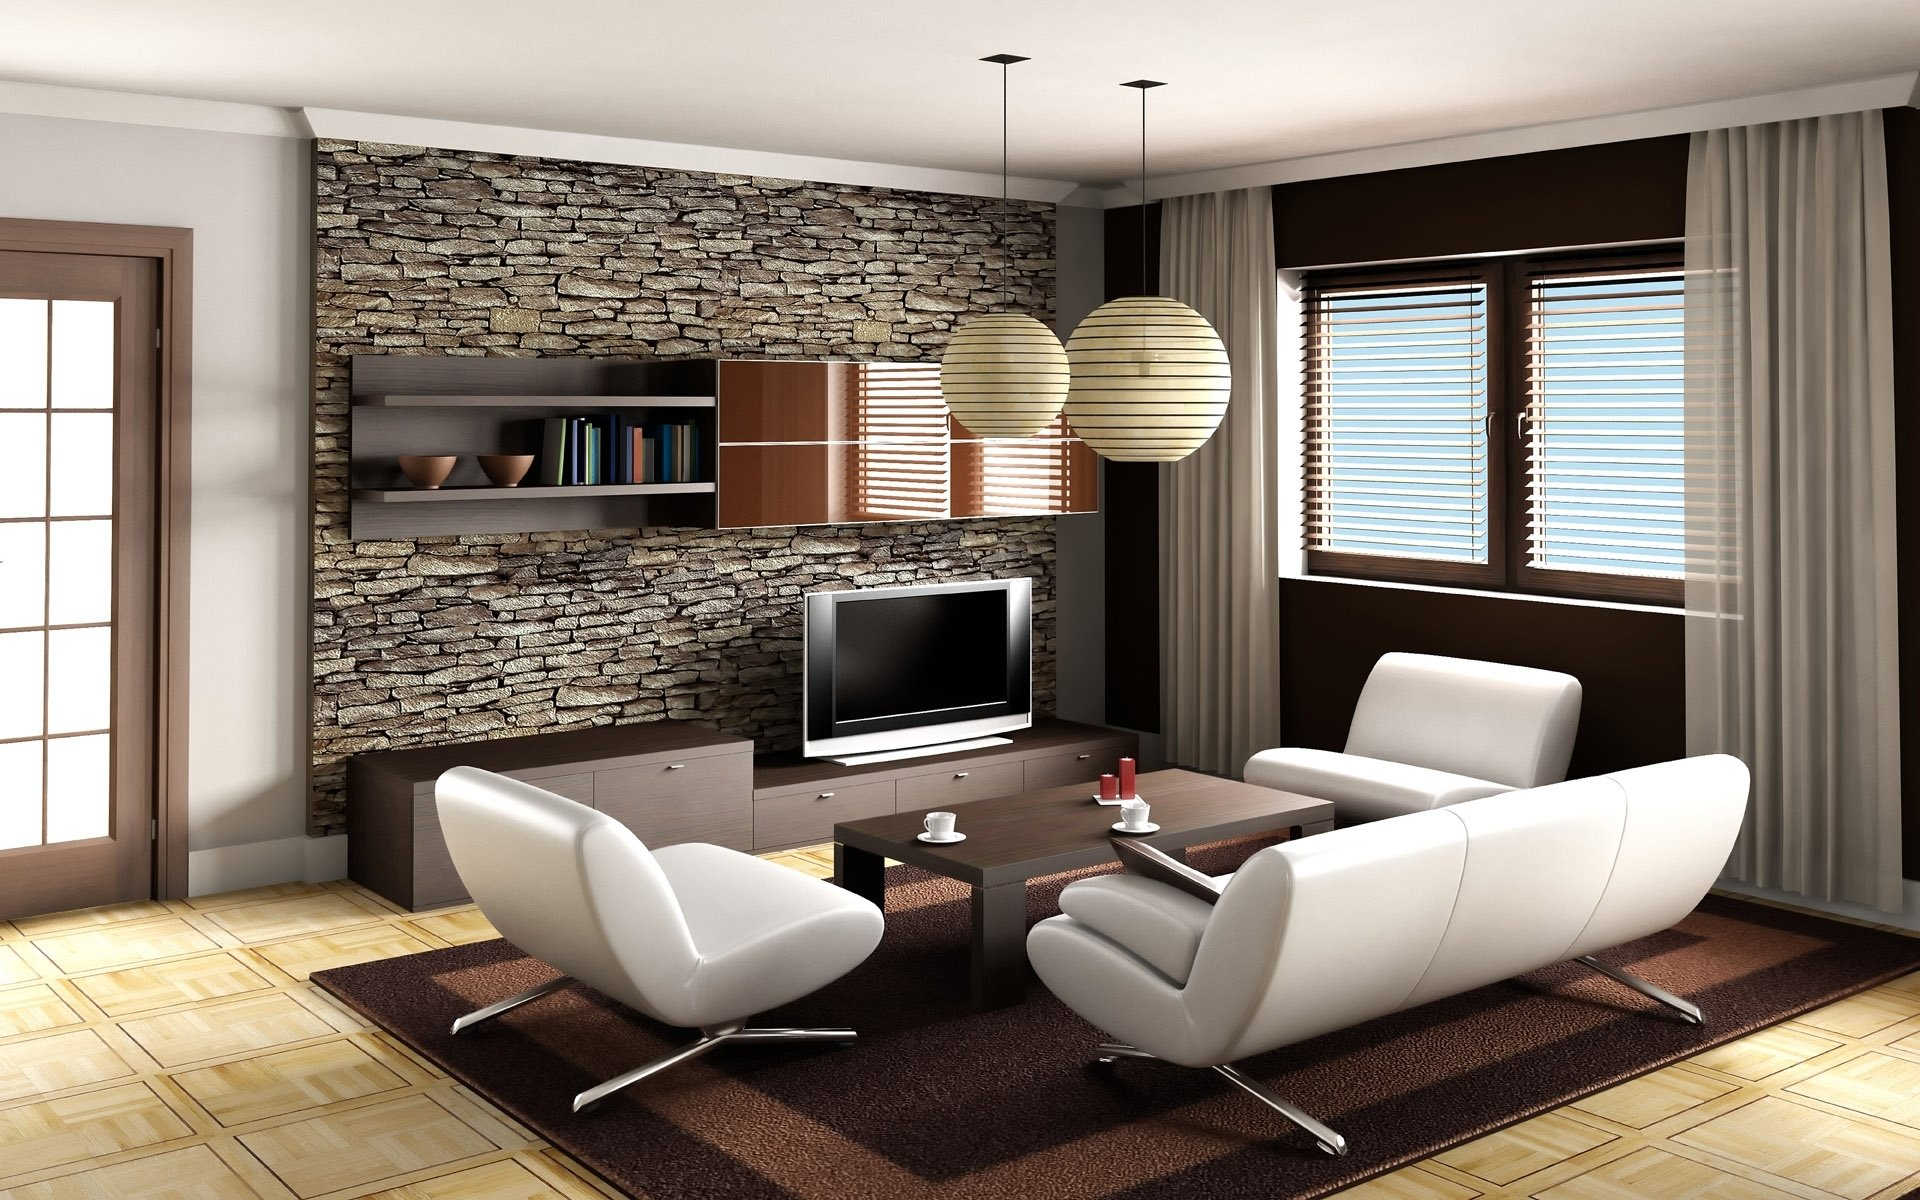 10 Lovely Living Room Decorating Ideas Pictures living room furniture living room decoration ideas living room 3